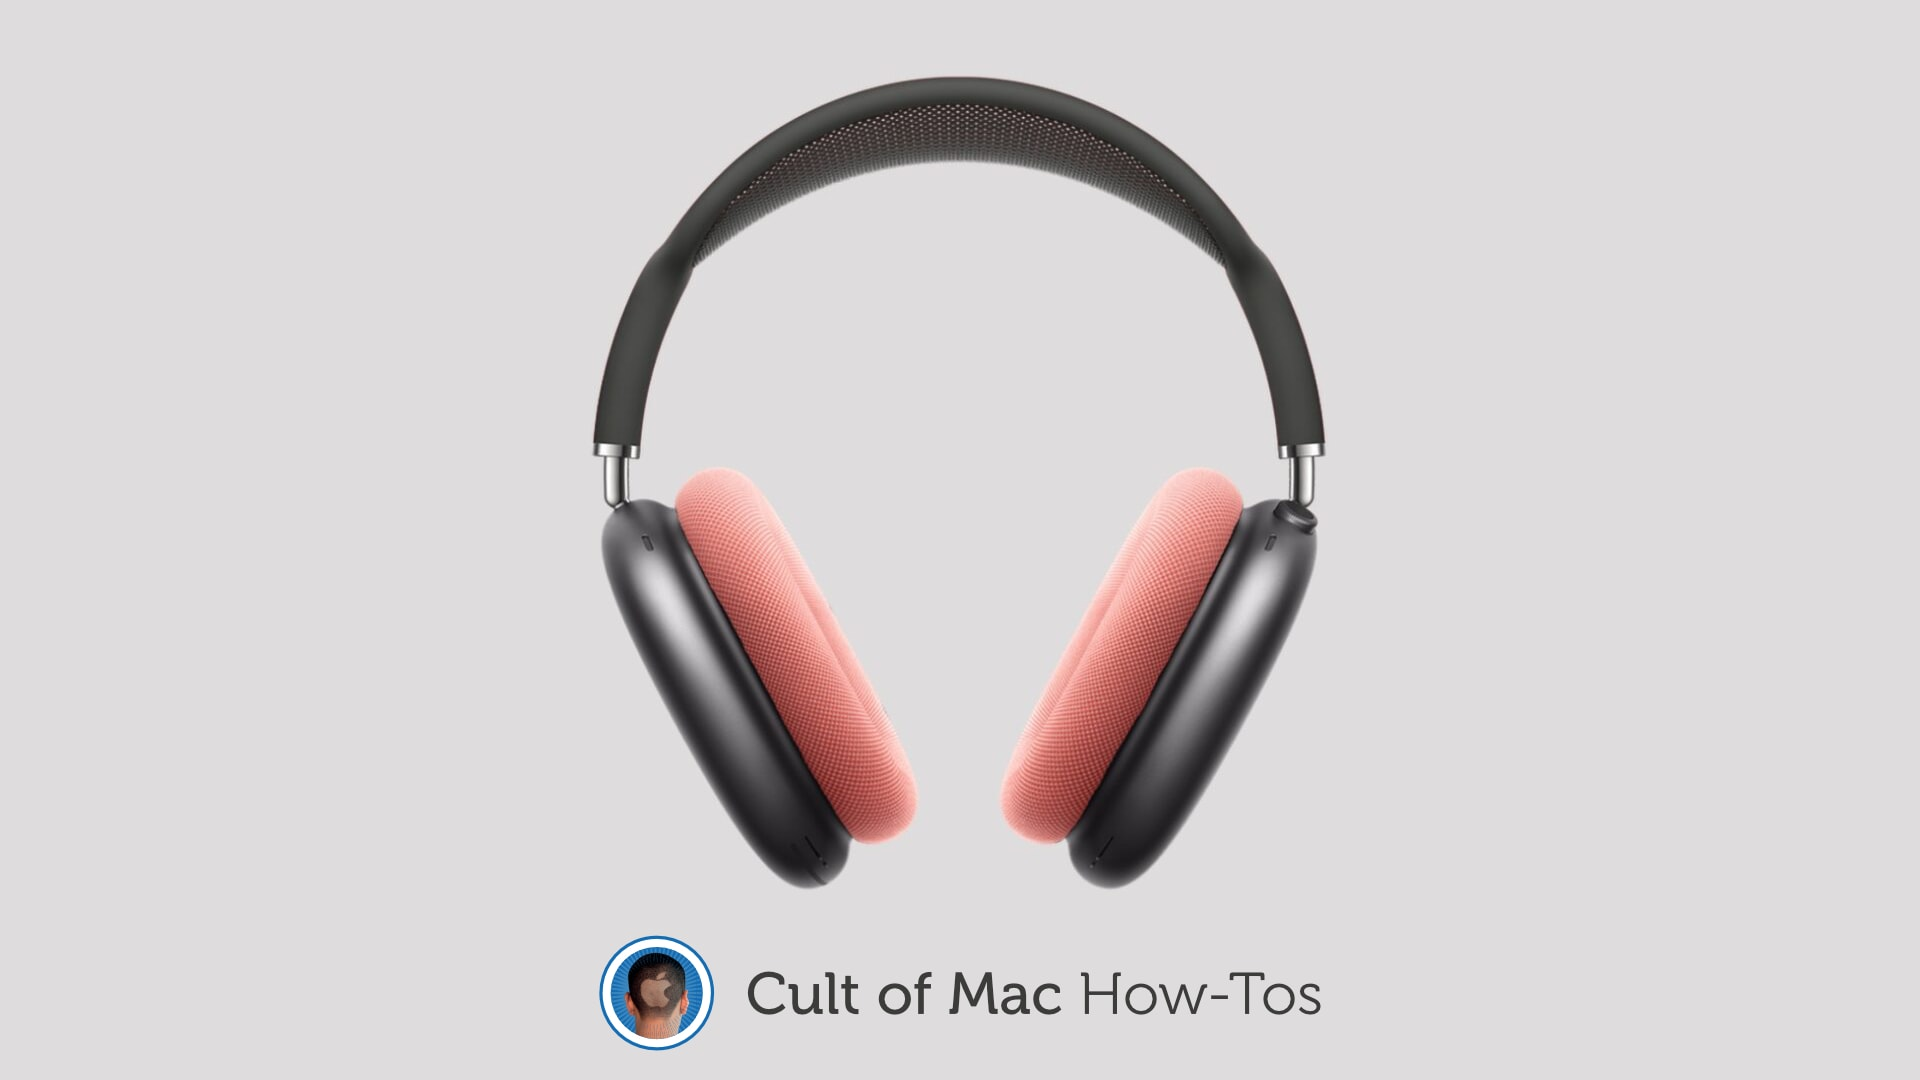 How to connect AirPods Max to non-Apple devices